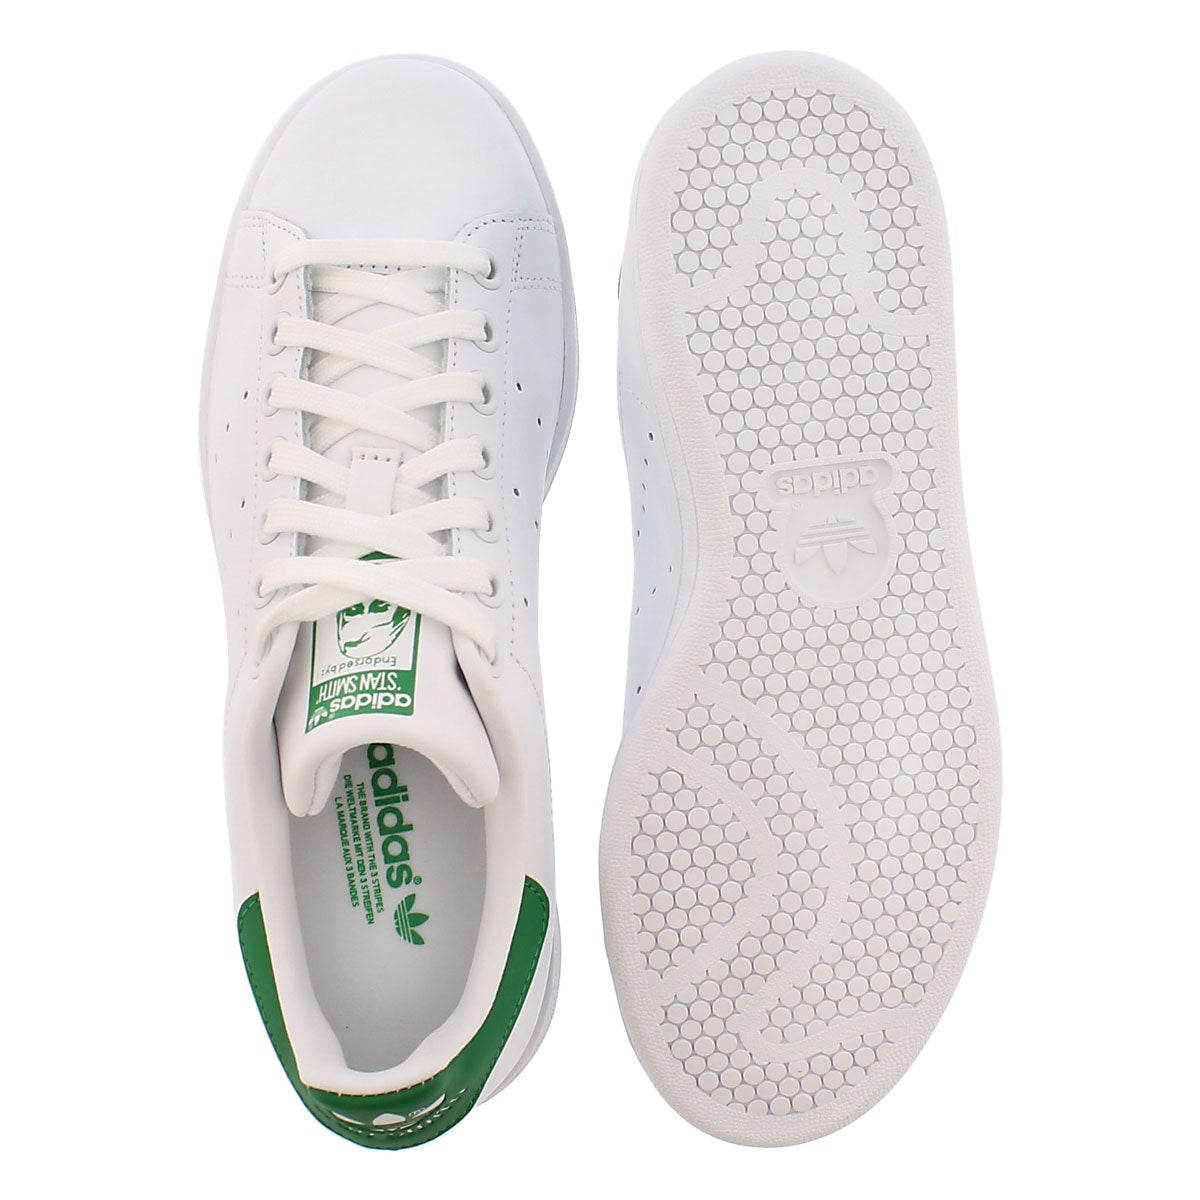 Lds Stan Smith white/green sneaker